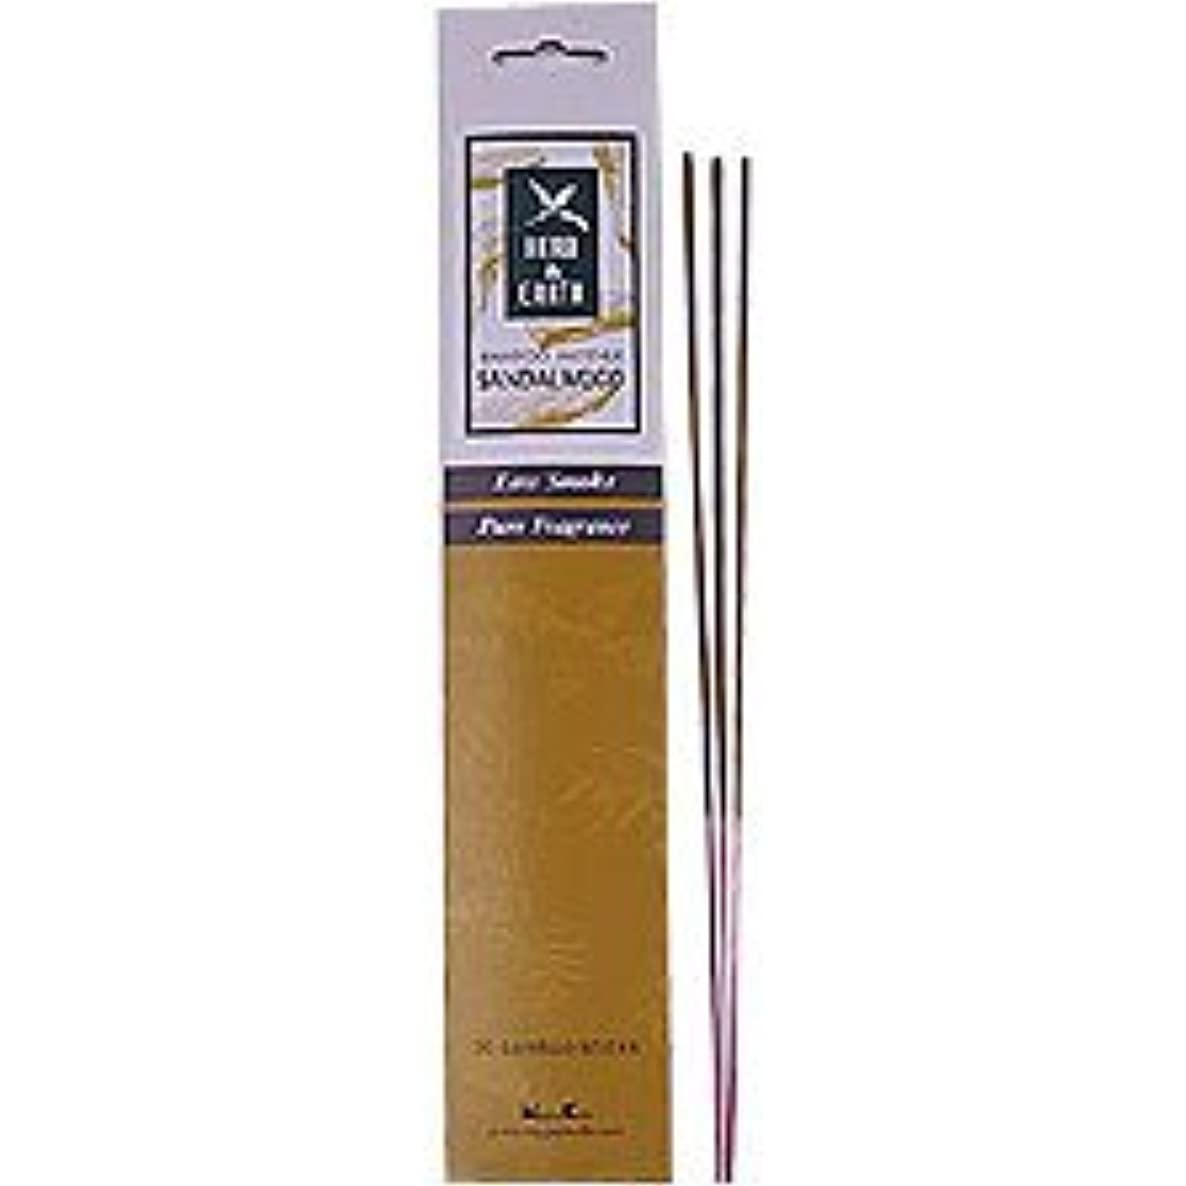 恵み機知に富んだ健全Sandalwood - Herb and Earth Incense From Nippon Kodo - 20 Stick Package by Herb & Earth [並行輸入品]